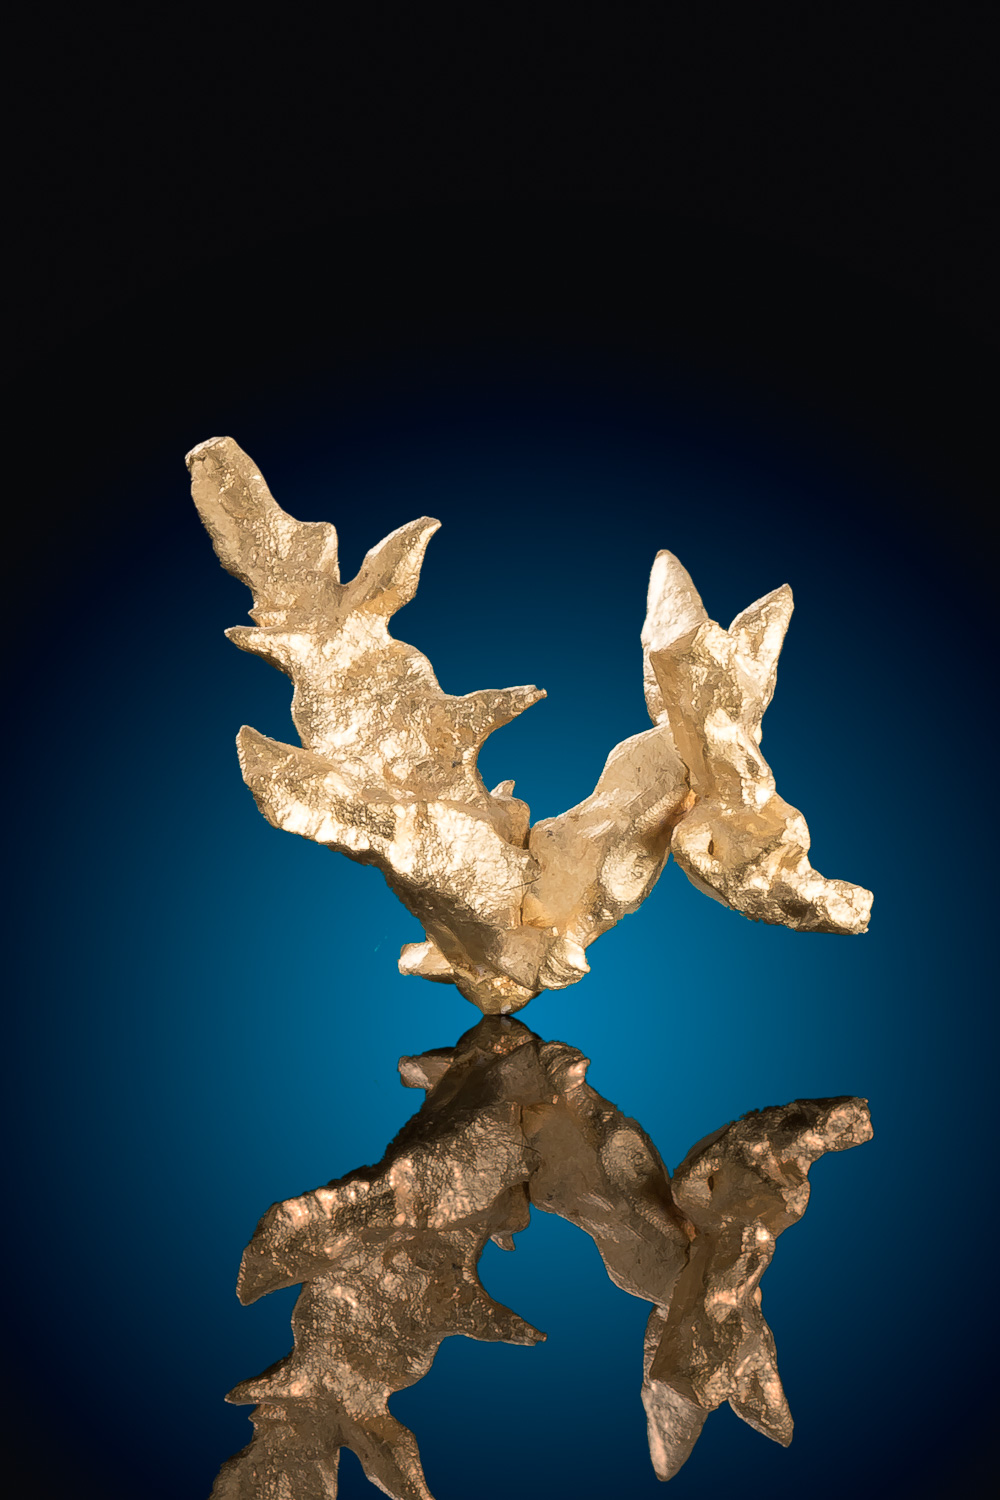 Sharp Multi-Point Venezuela Natural Gold Crystal